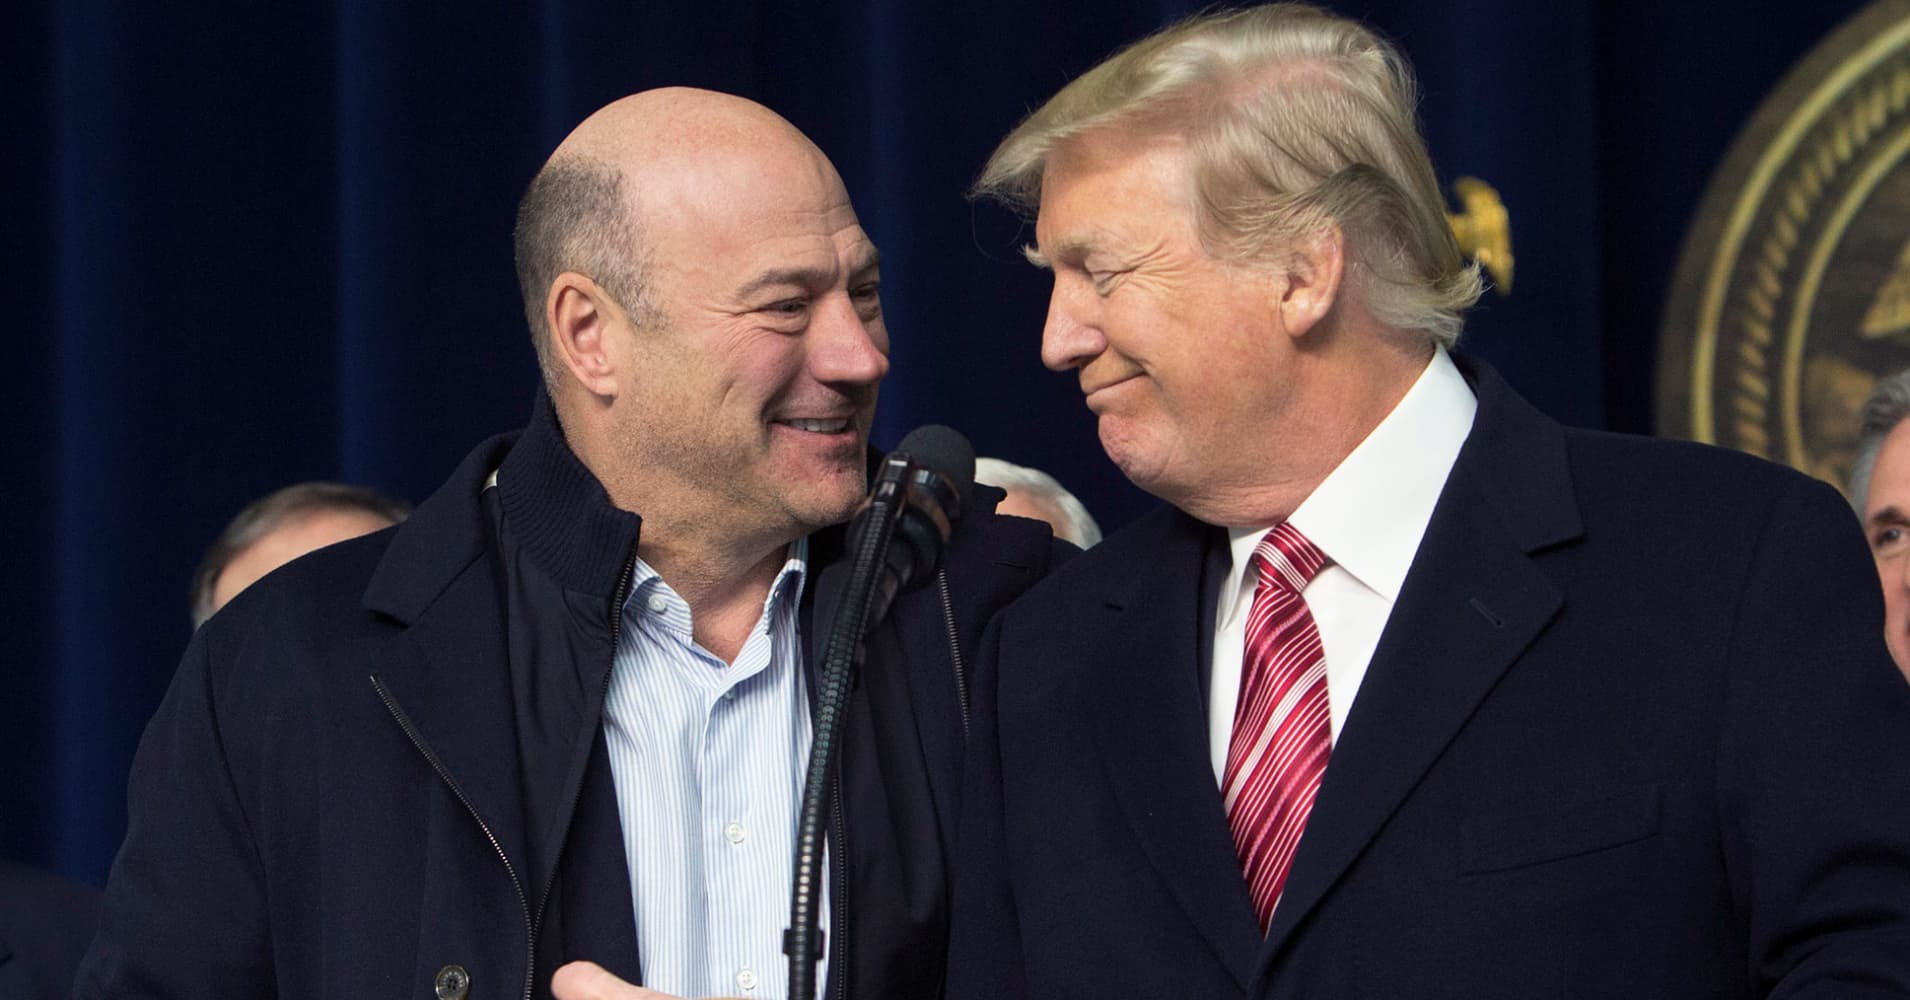 The Goldman Sachs era in Trump's White House is fading away